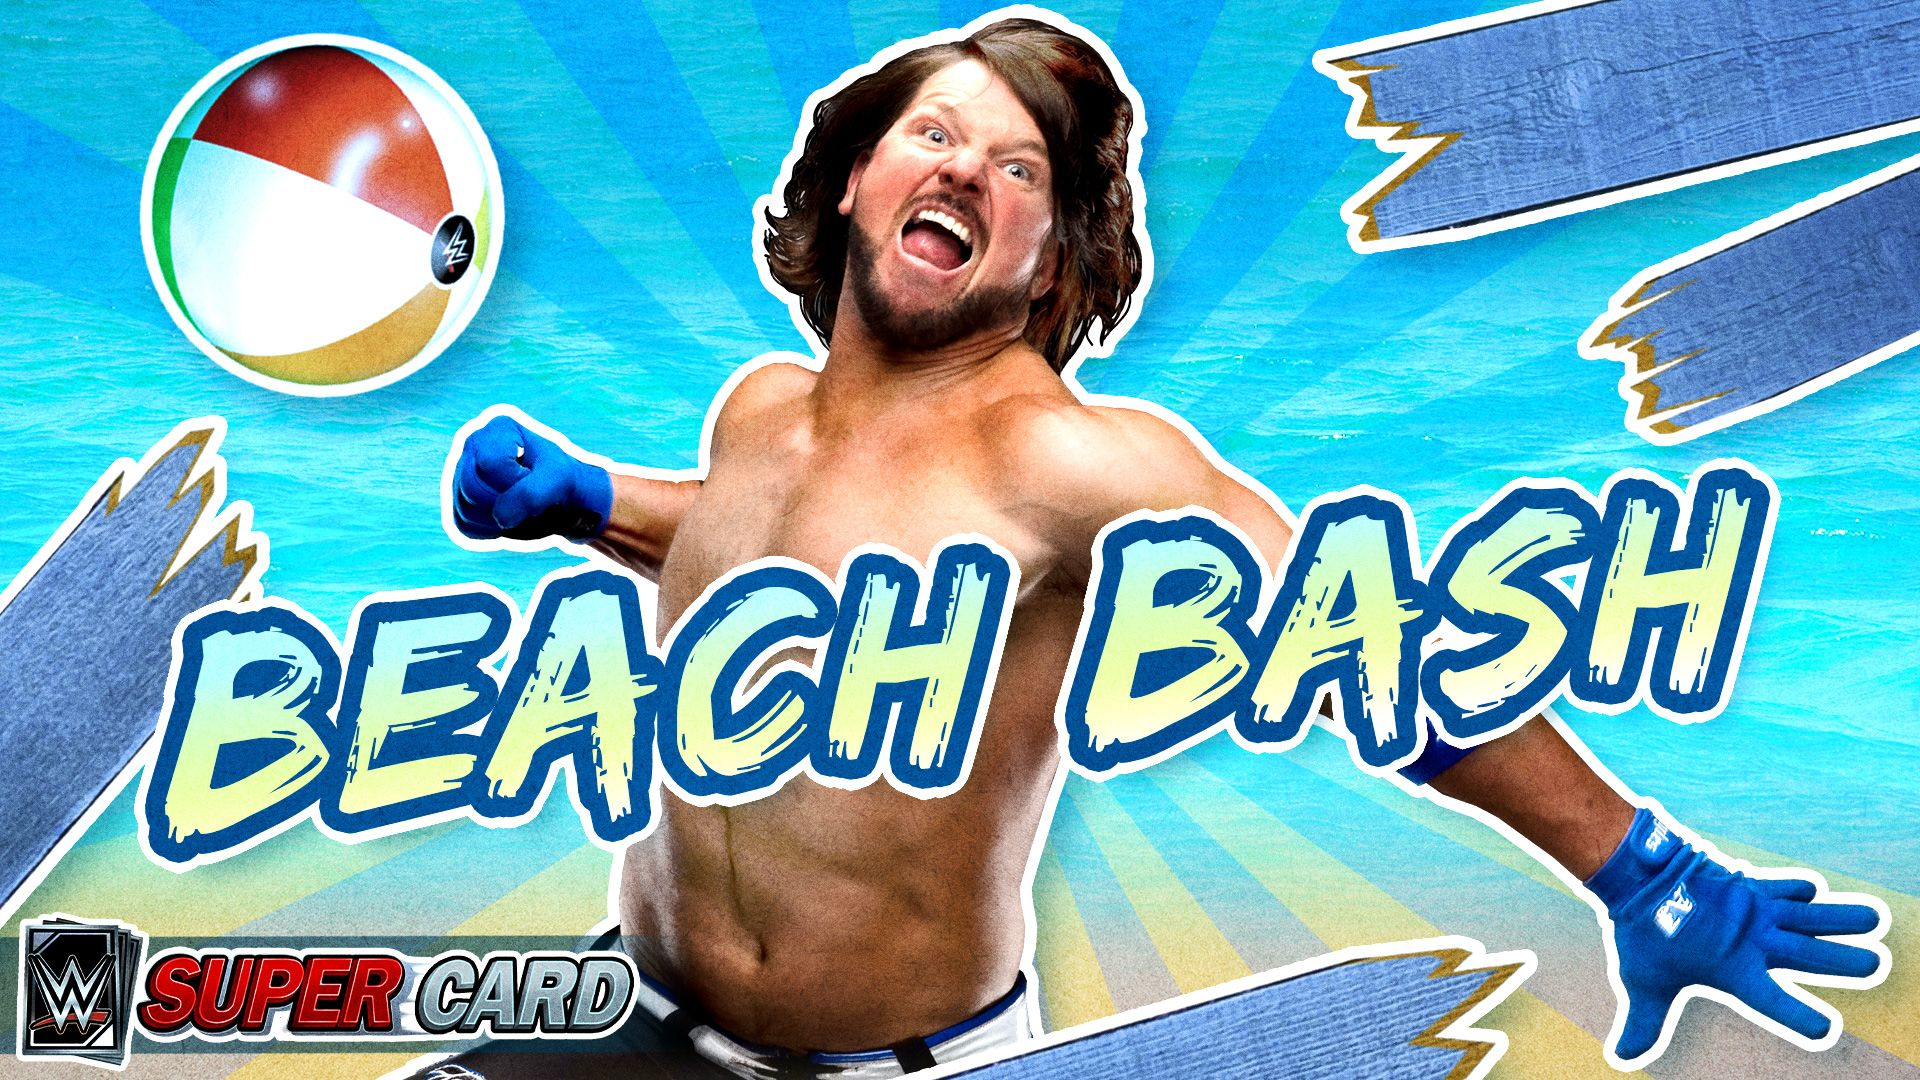 WWE SuperCard celebrates Fourth of July with Beach Bash Summer Promotion